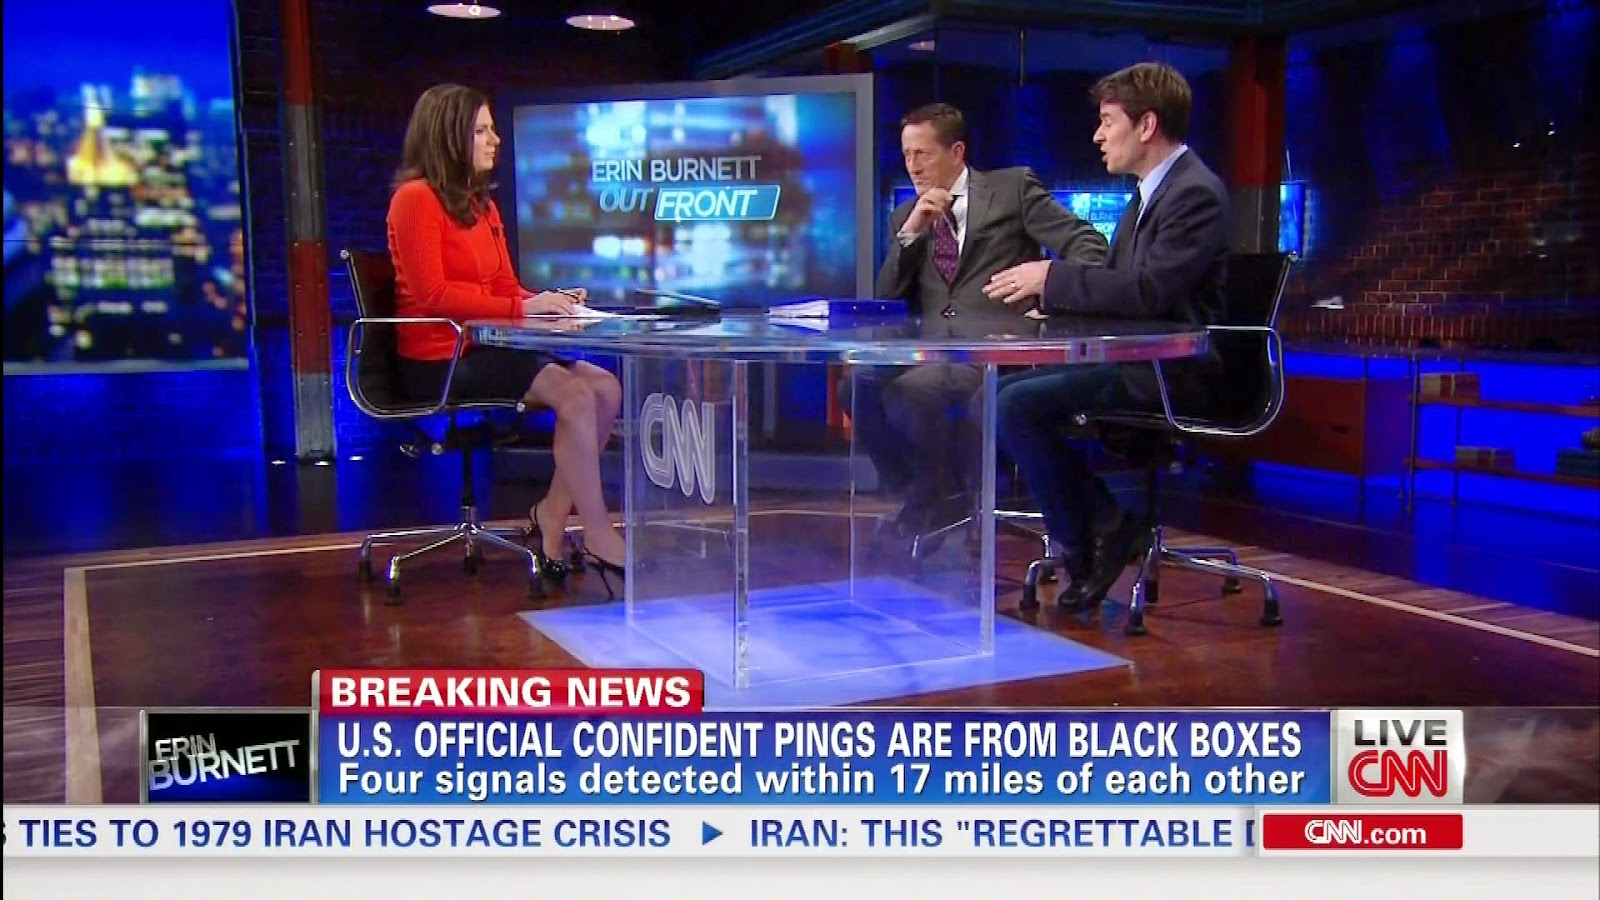 Erin Burnett legs on CNN OutFront